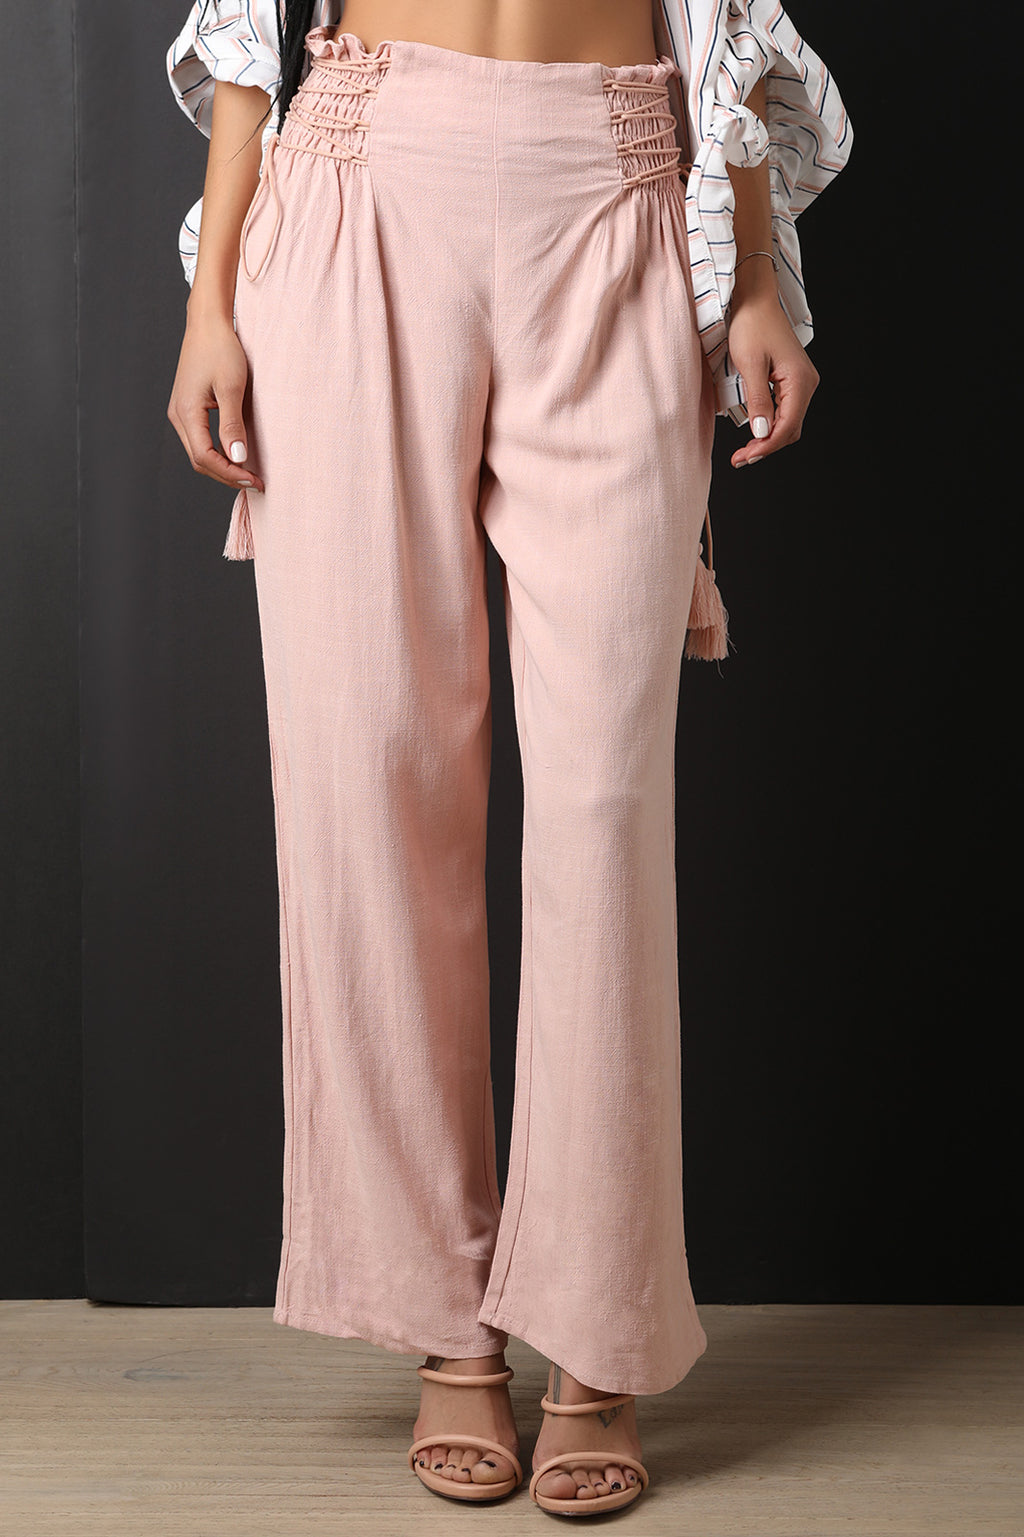 High Rise Smocked Lace Up Flared Pants